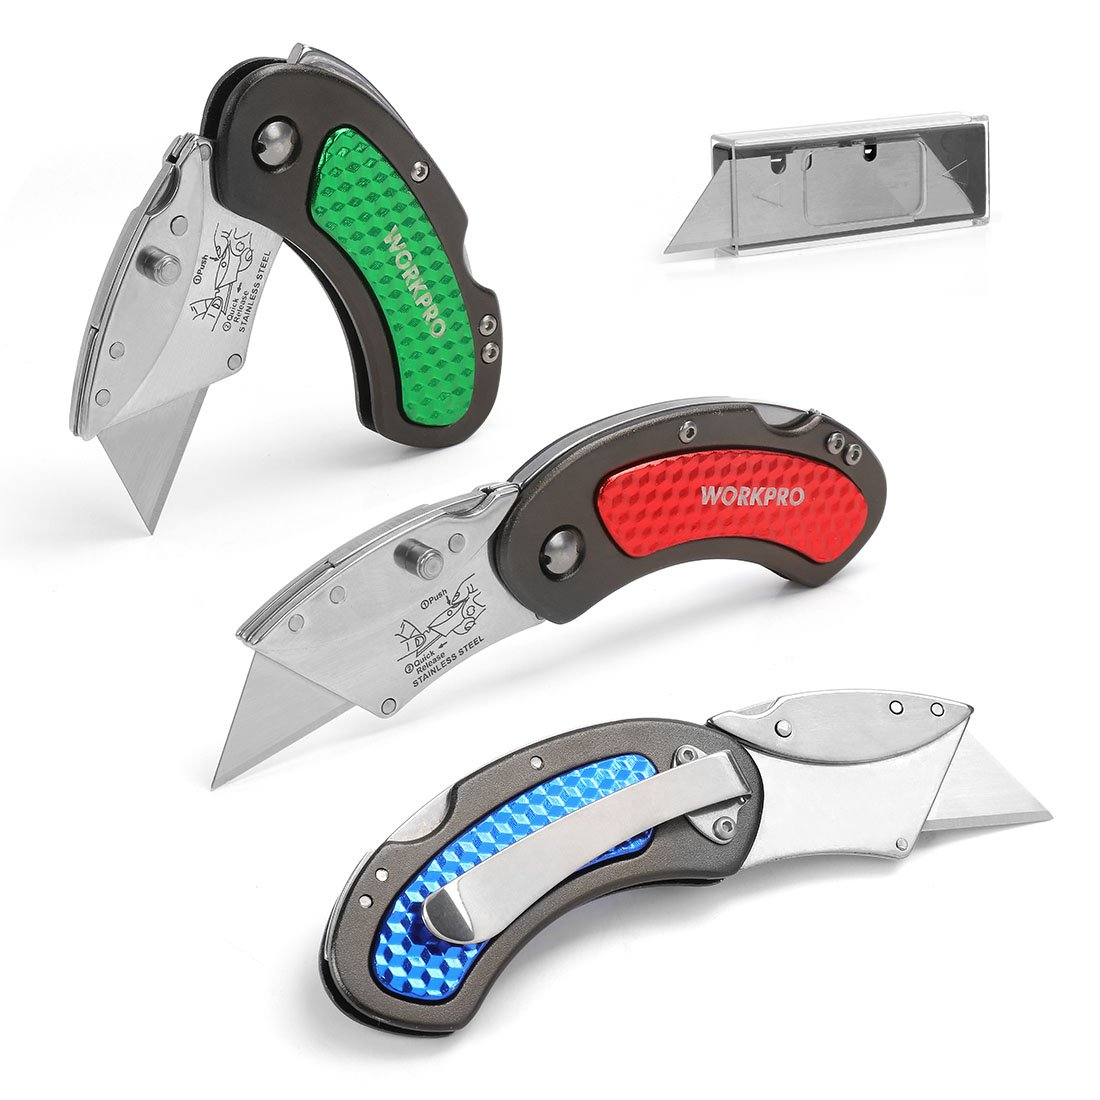 WORKPRO Folding Utility Knife Set Quick Change Blade, Back-Lock Mechanism 3-Piece with 10-Piece Extra Blades by WORKPRO